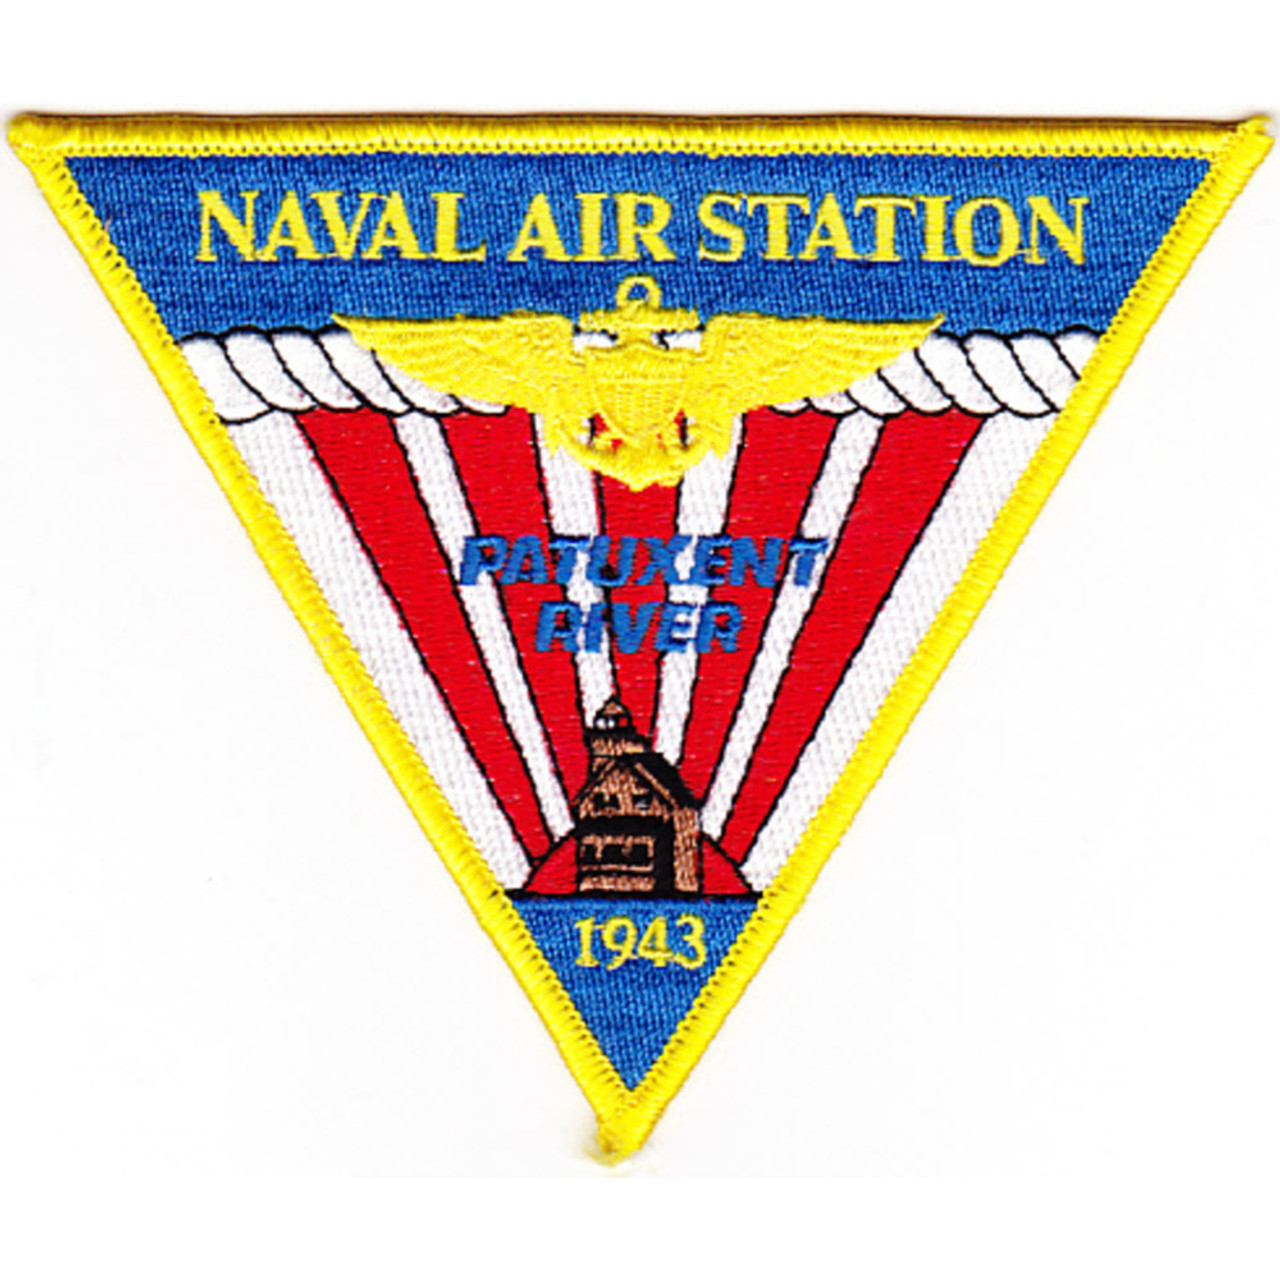 Pax River Maryland >> Naval Air Station Patuxent River Maryland Patch A Version